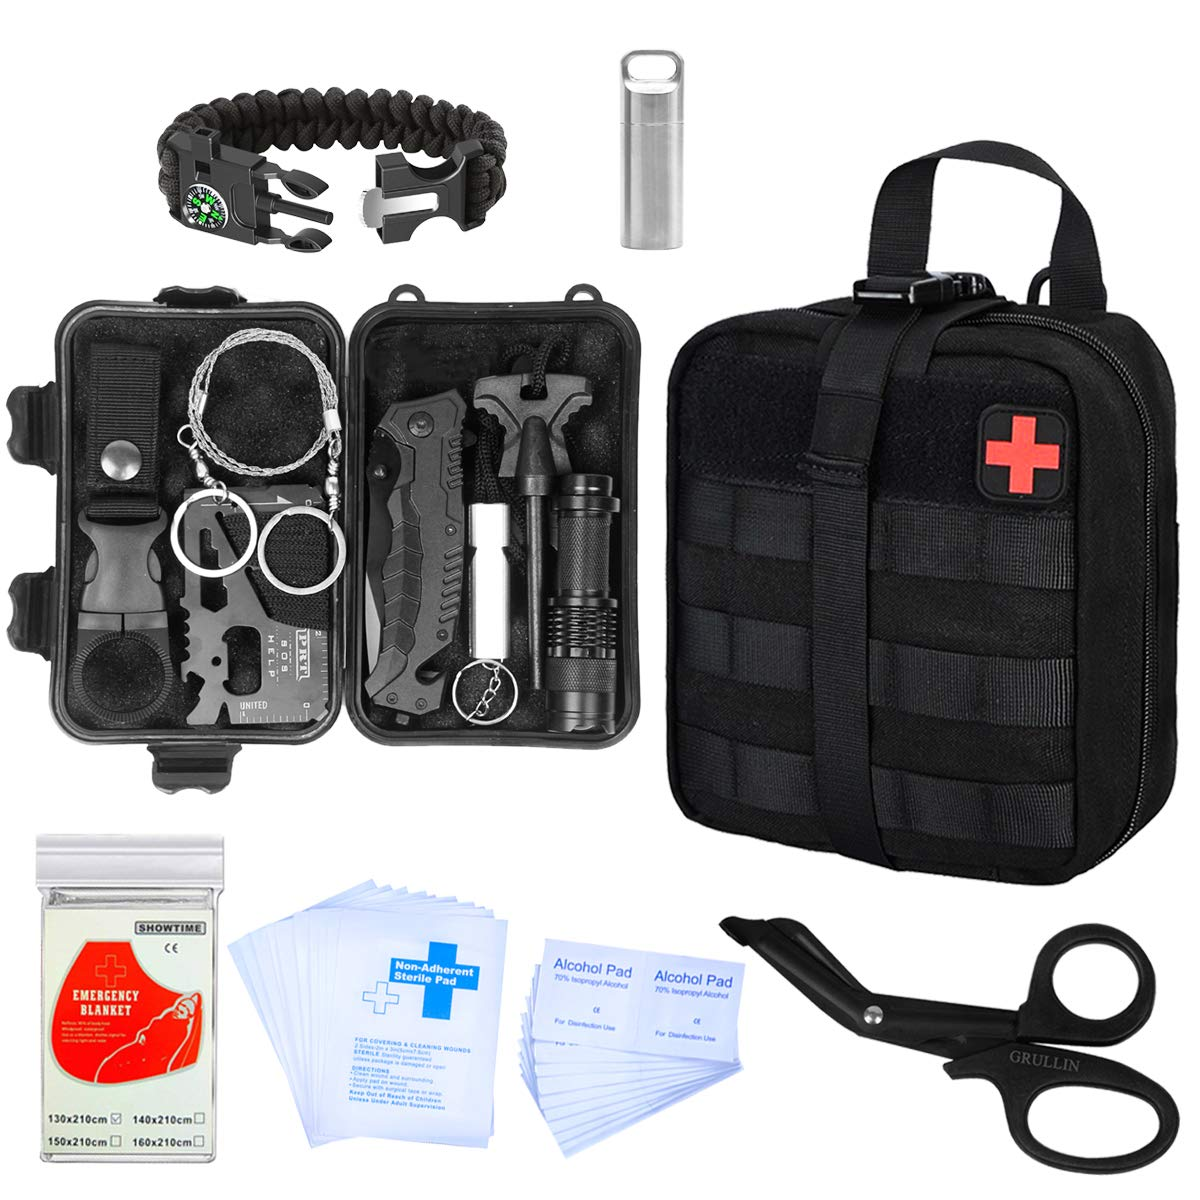 GRULLIN Emergency Survival Kit | Outdoor Survival Gear Tool with Molle Pouch, Stainless Steel Waterproof Pill Case, Survival Bracelets, Fire Starter, Whistle, Tactical Pen for Car, Camping, Hiking,